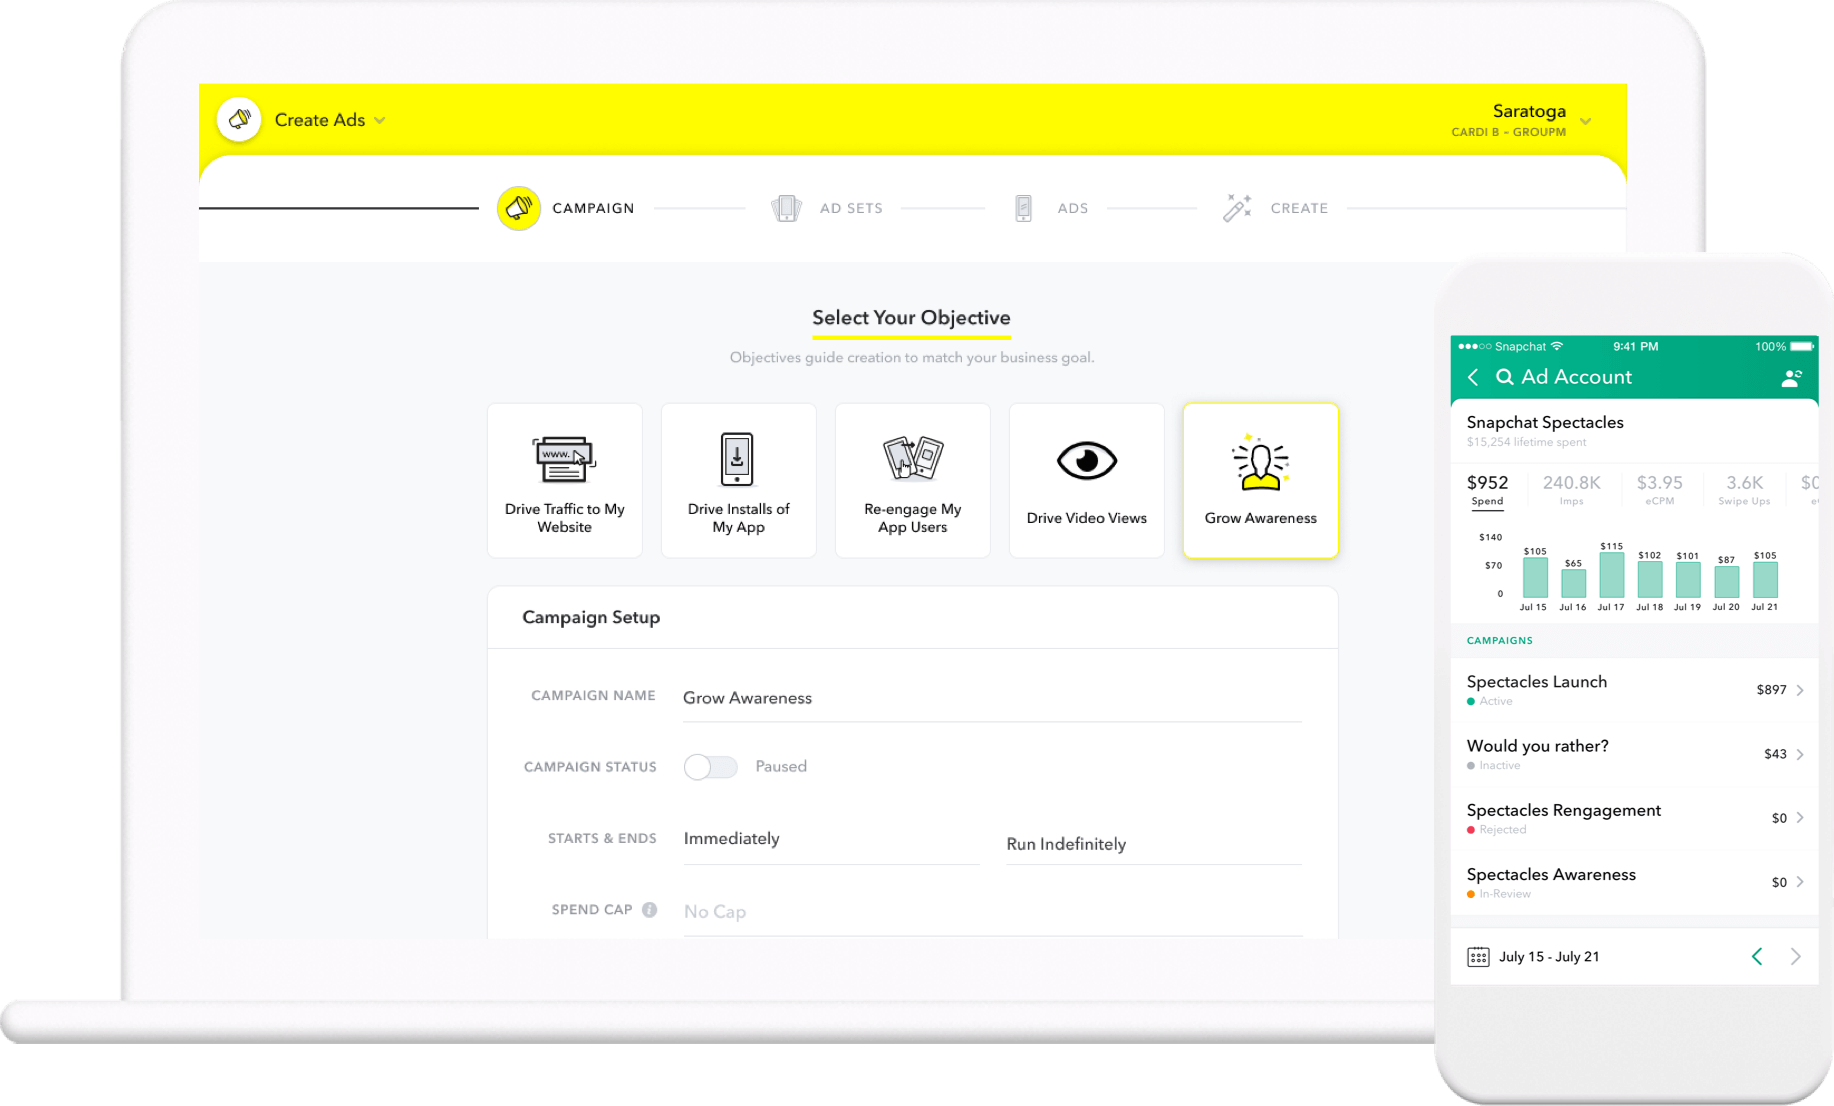 Web optimized transparent png for snapchat. Snap ads manager ad